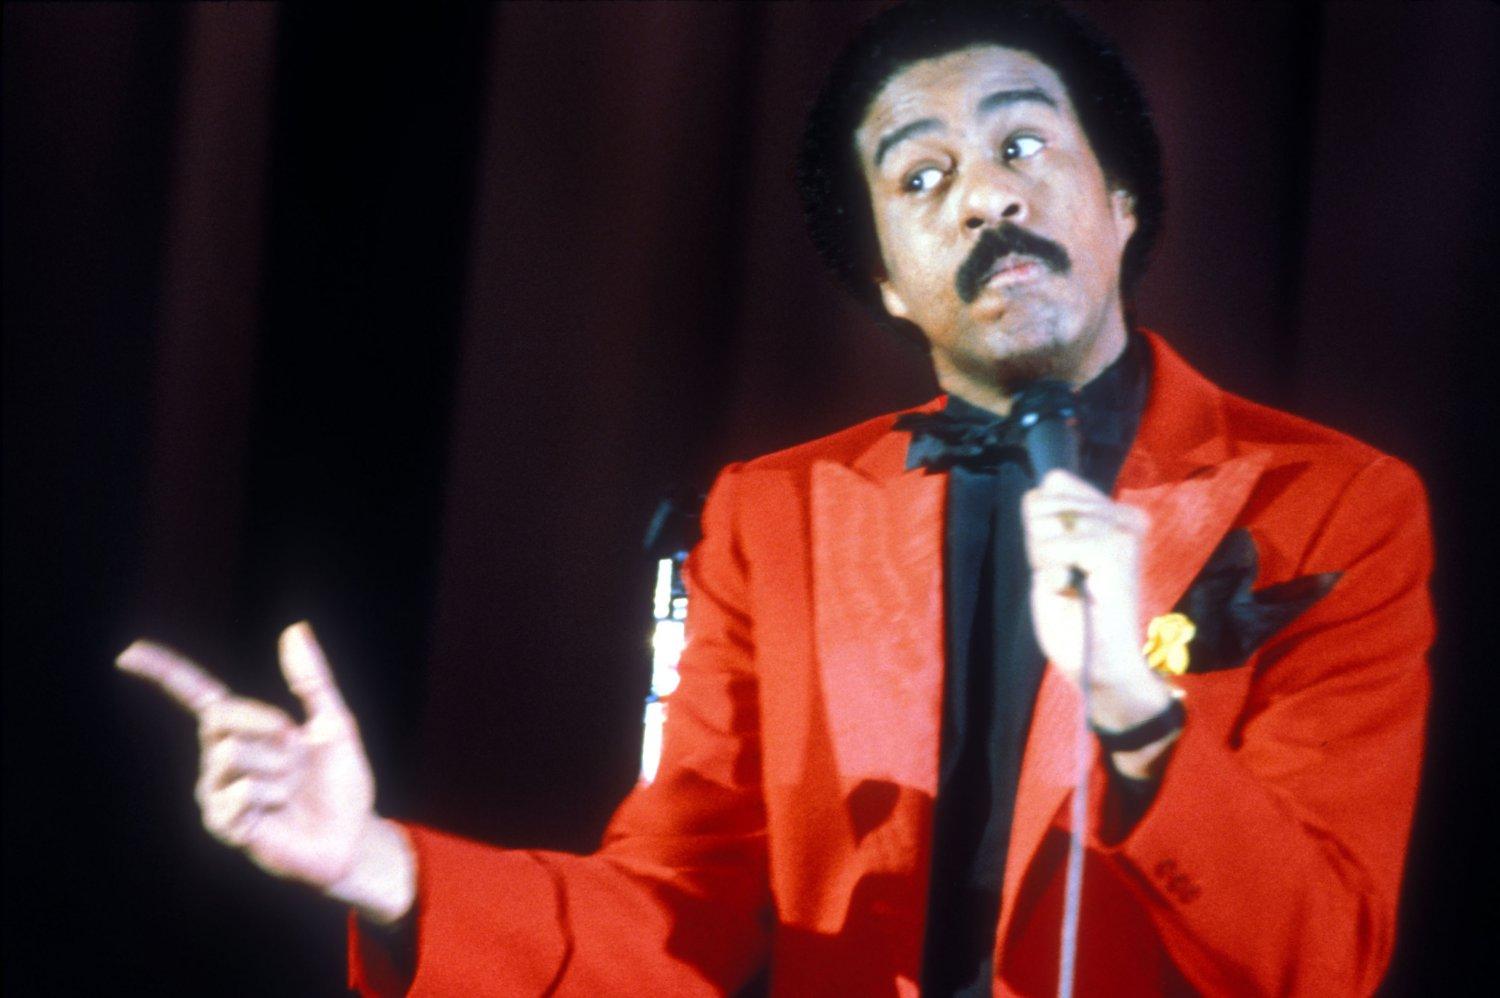 """From """"I Am Richard Pryor,"""" which premieres March 15 on Paramount Network. Photo: Rostar Kobal/Shutterstock"""